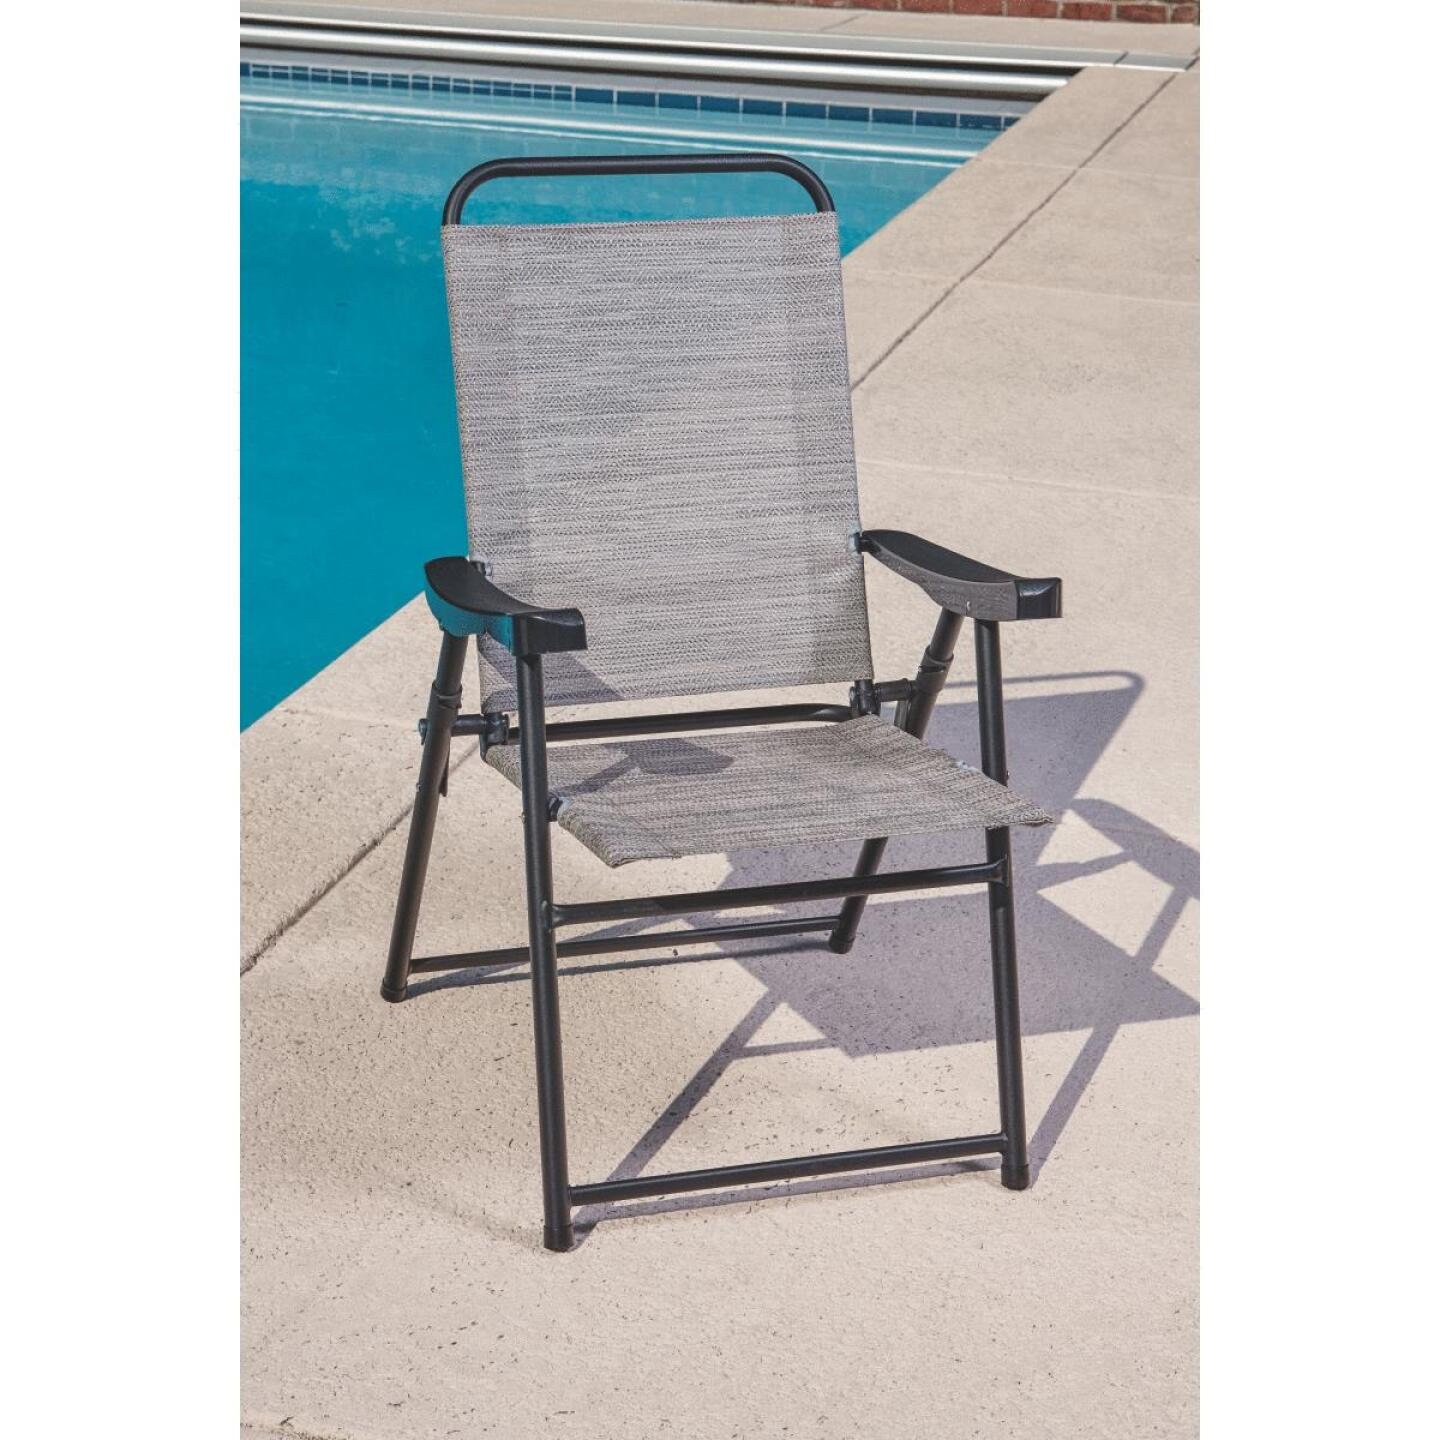 Outdoor Expressions Galveston Gray Sling Folding Chair Image 7